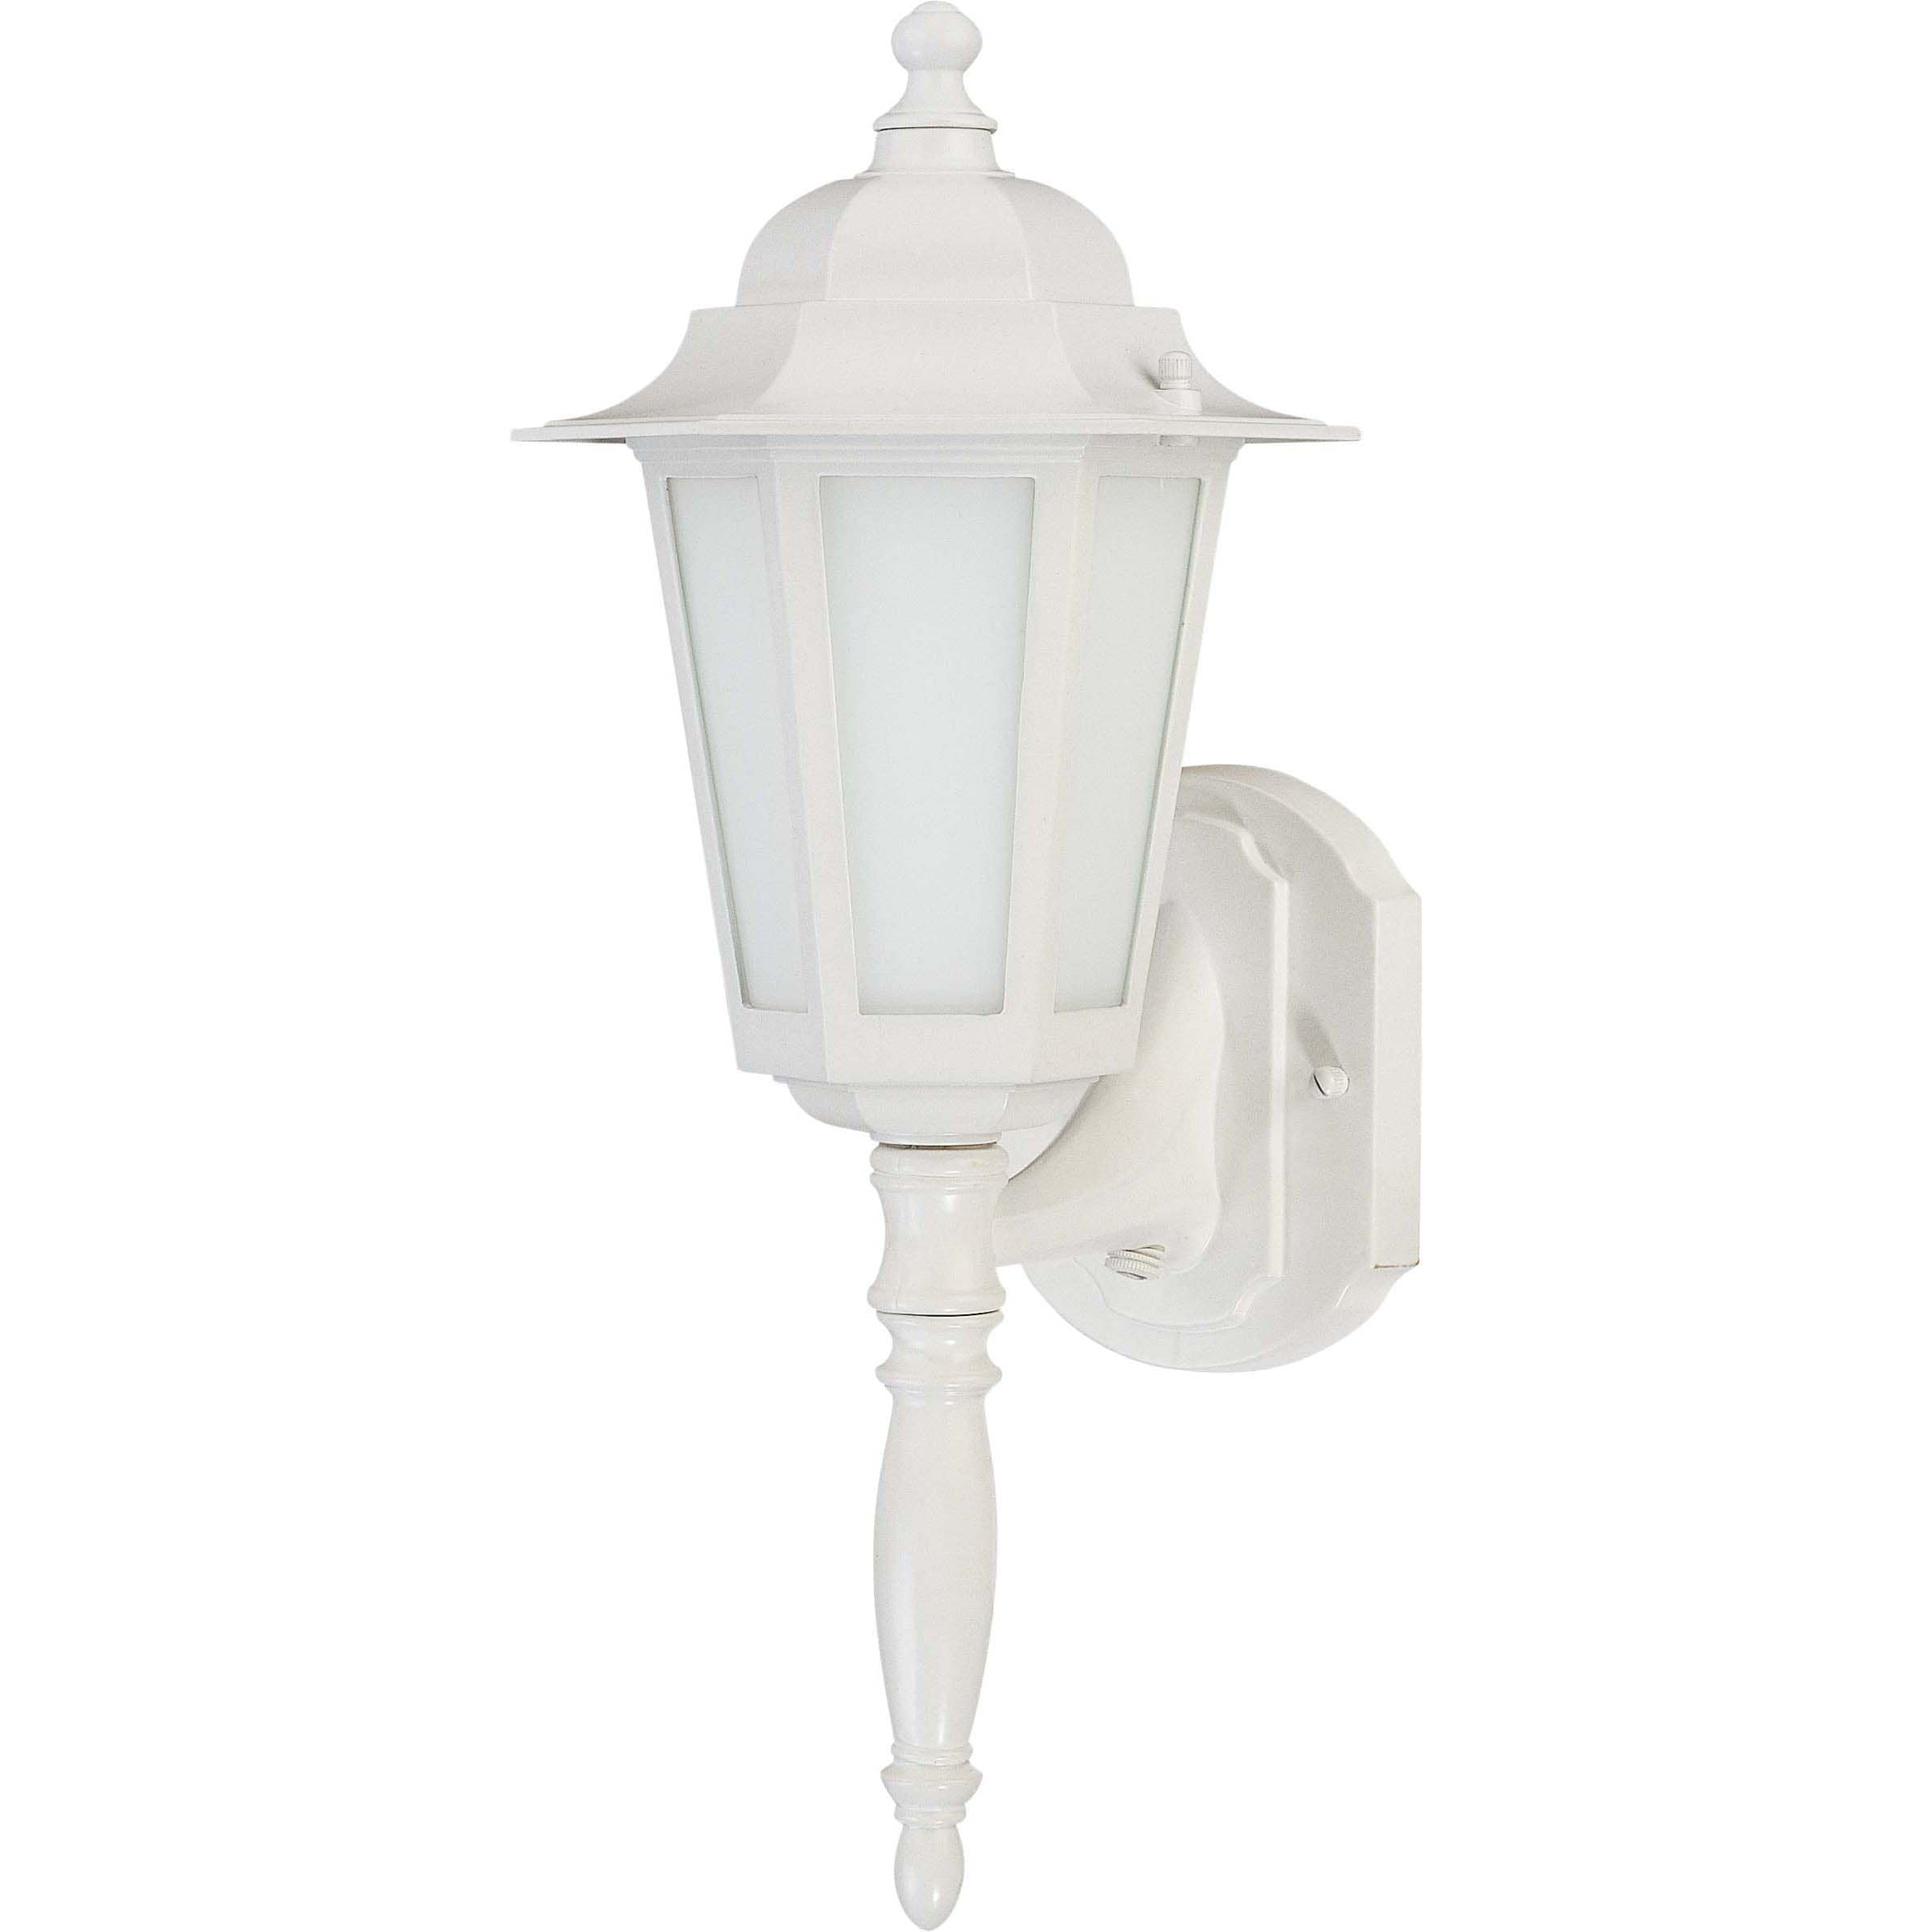 Cornerstone 1 Light White With Satin White Glass Wall Lantern